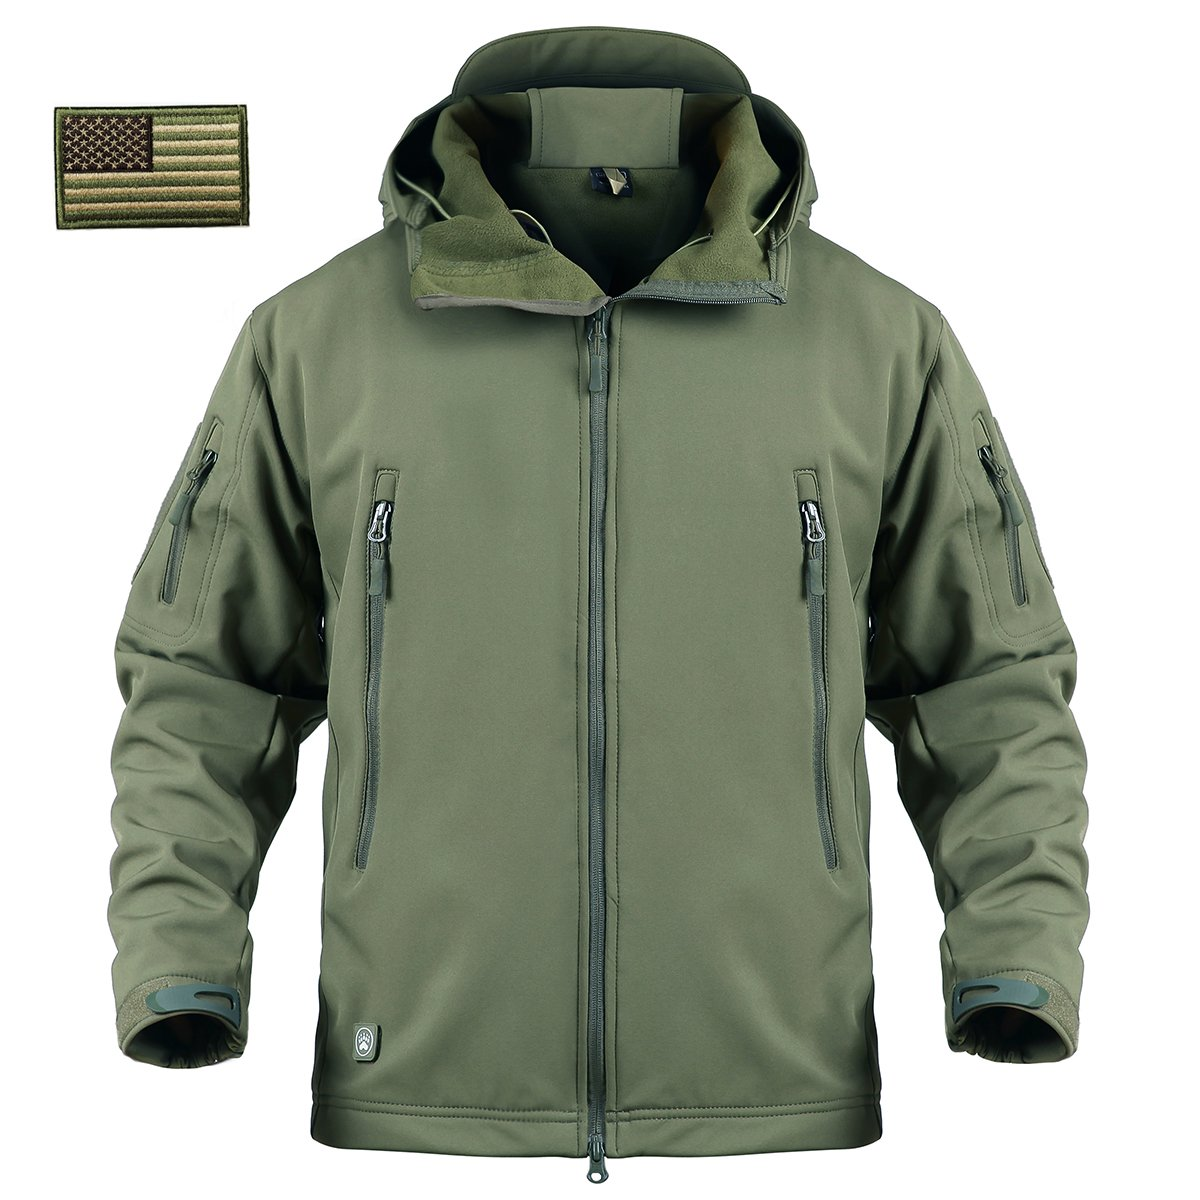 ReFire Gear Men's Army Special Ops Military Tactical Jacket Softshell Fleece Hooded Outdoor Coat, Army Green, Large by ReFire Gear